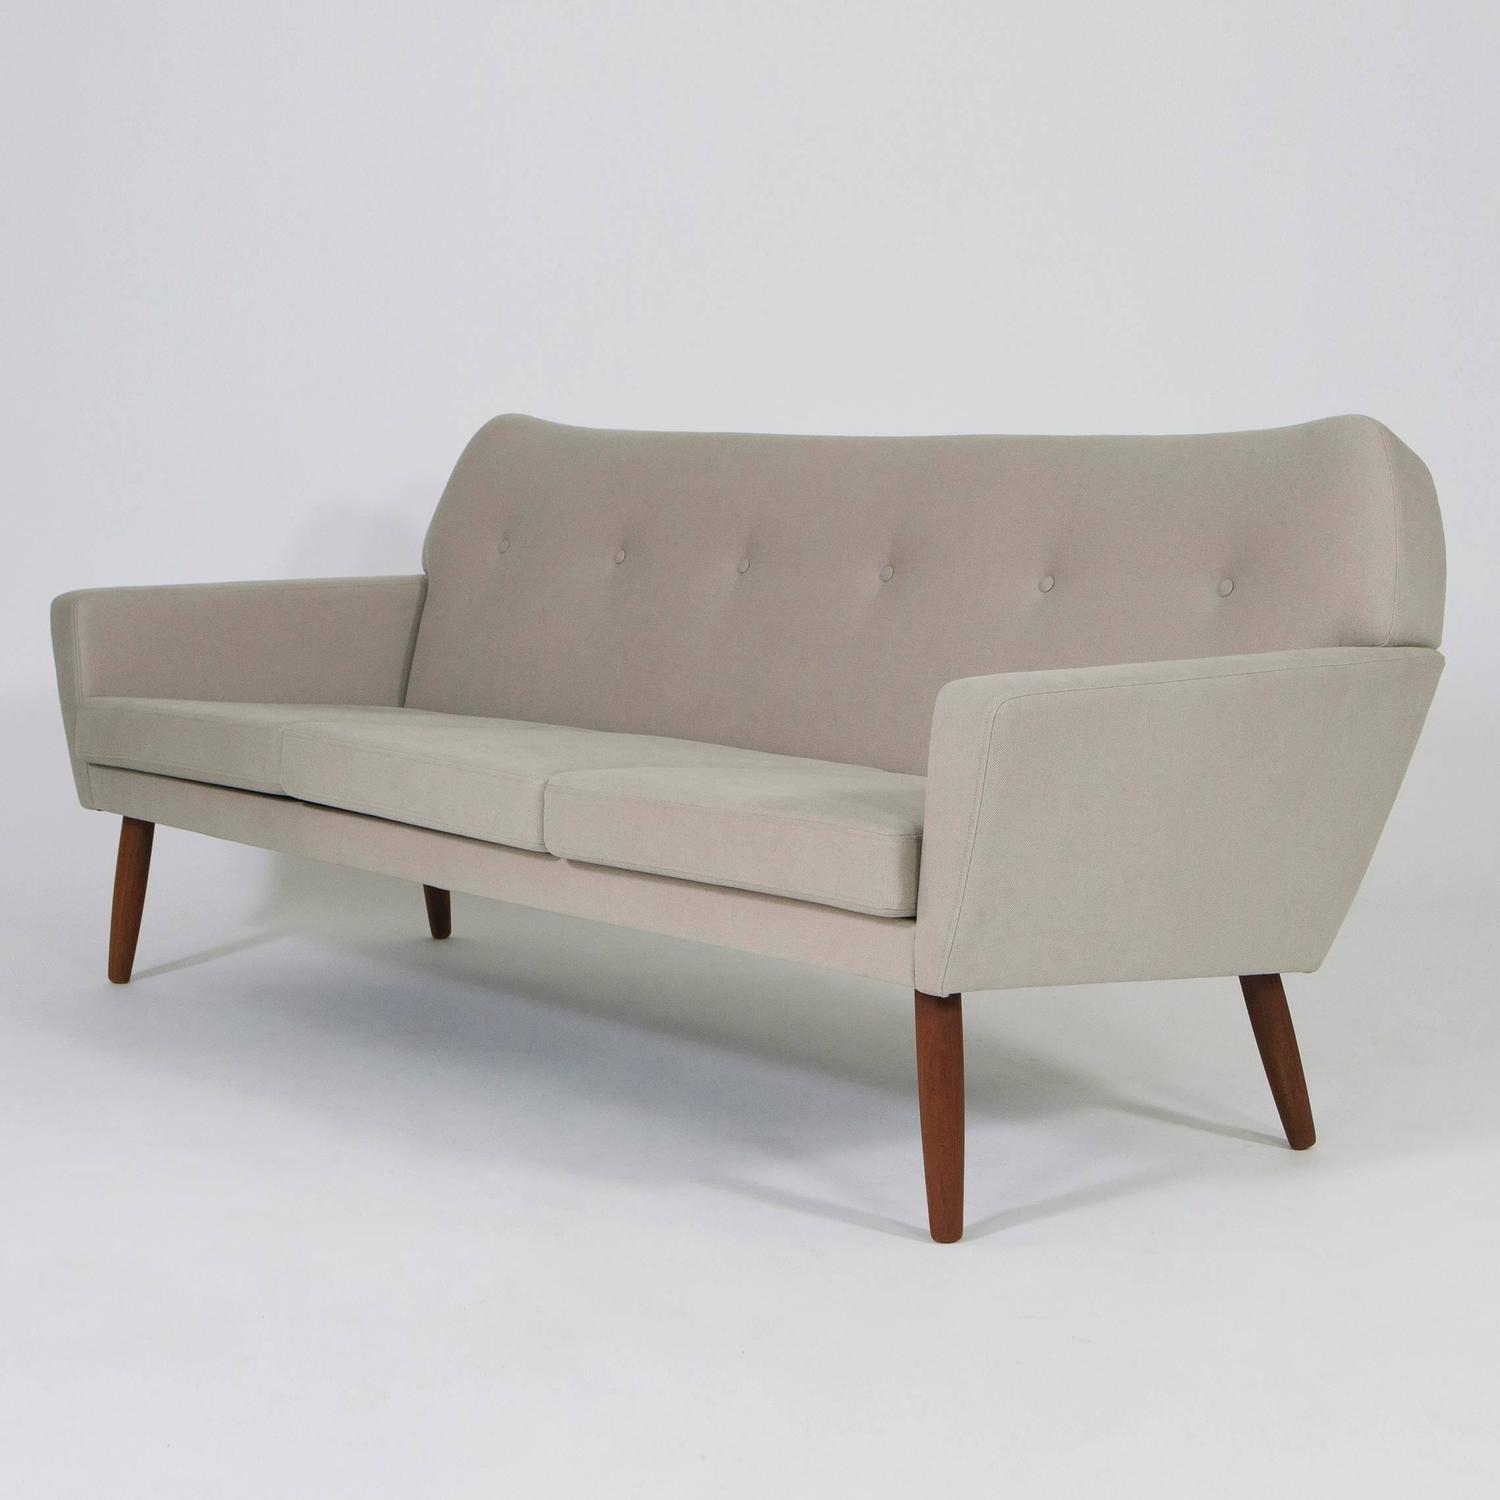 Mid century modern teak sofa danish design 1960s at 1stdibs for 1960s furniture designers